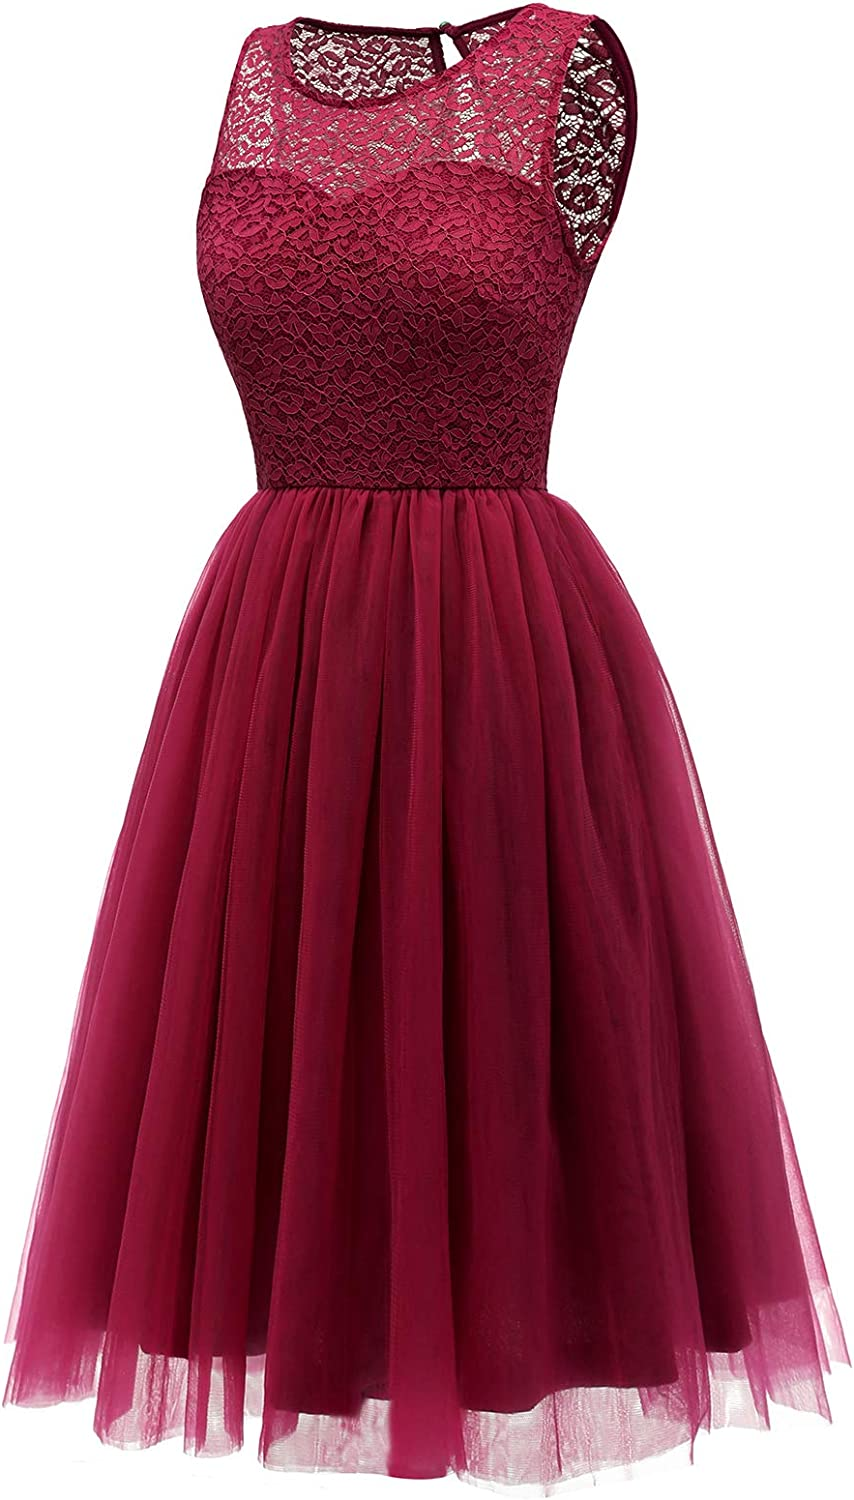 bbonlinedress Womens Short Tulle Prom Dress Lace Bridesmaid Cocktail Party Swing Dress